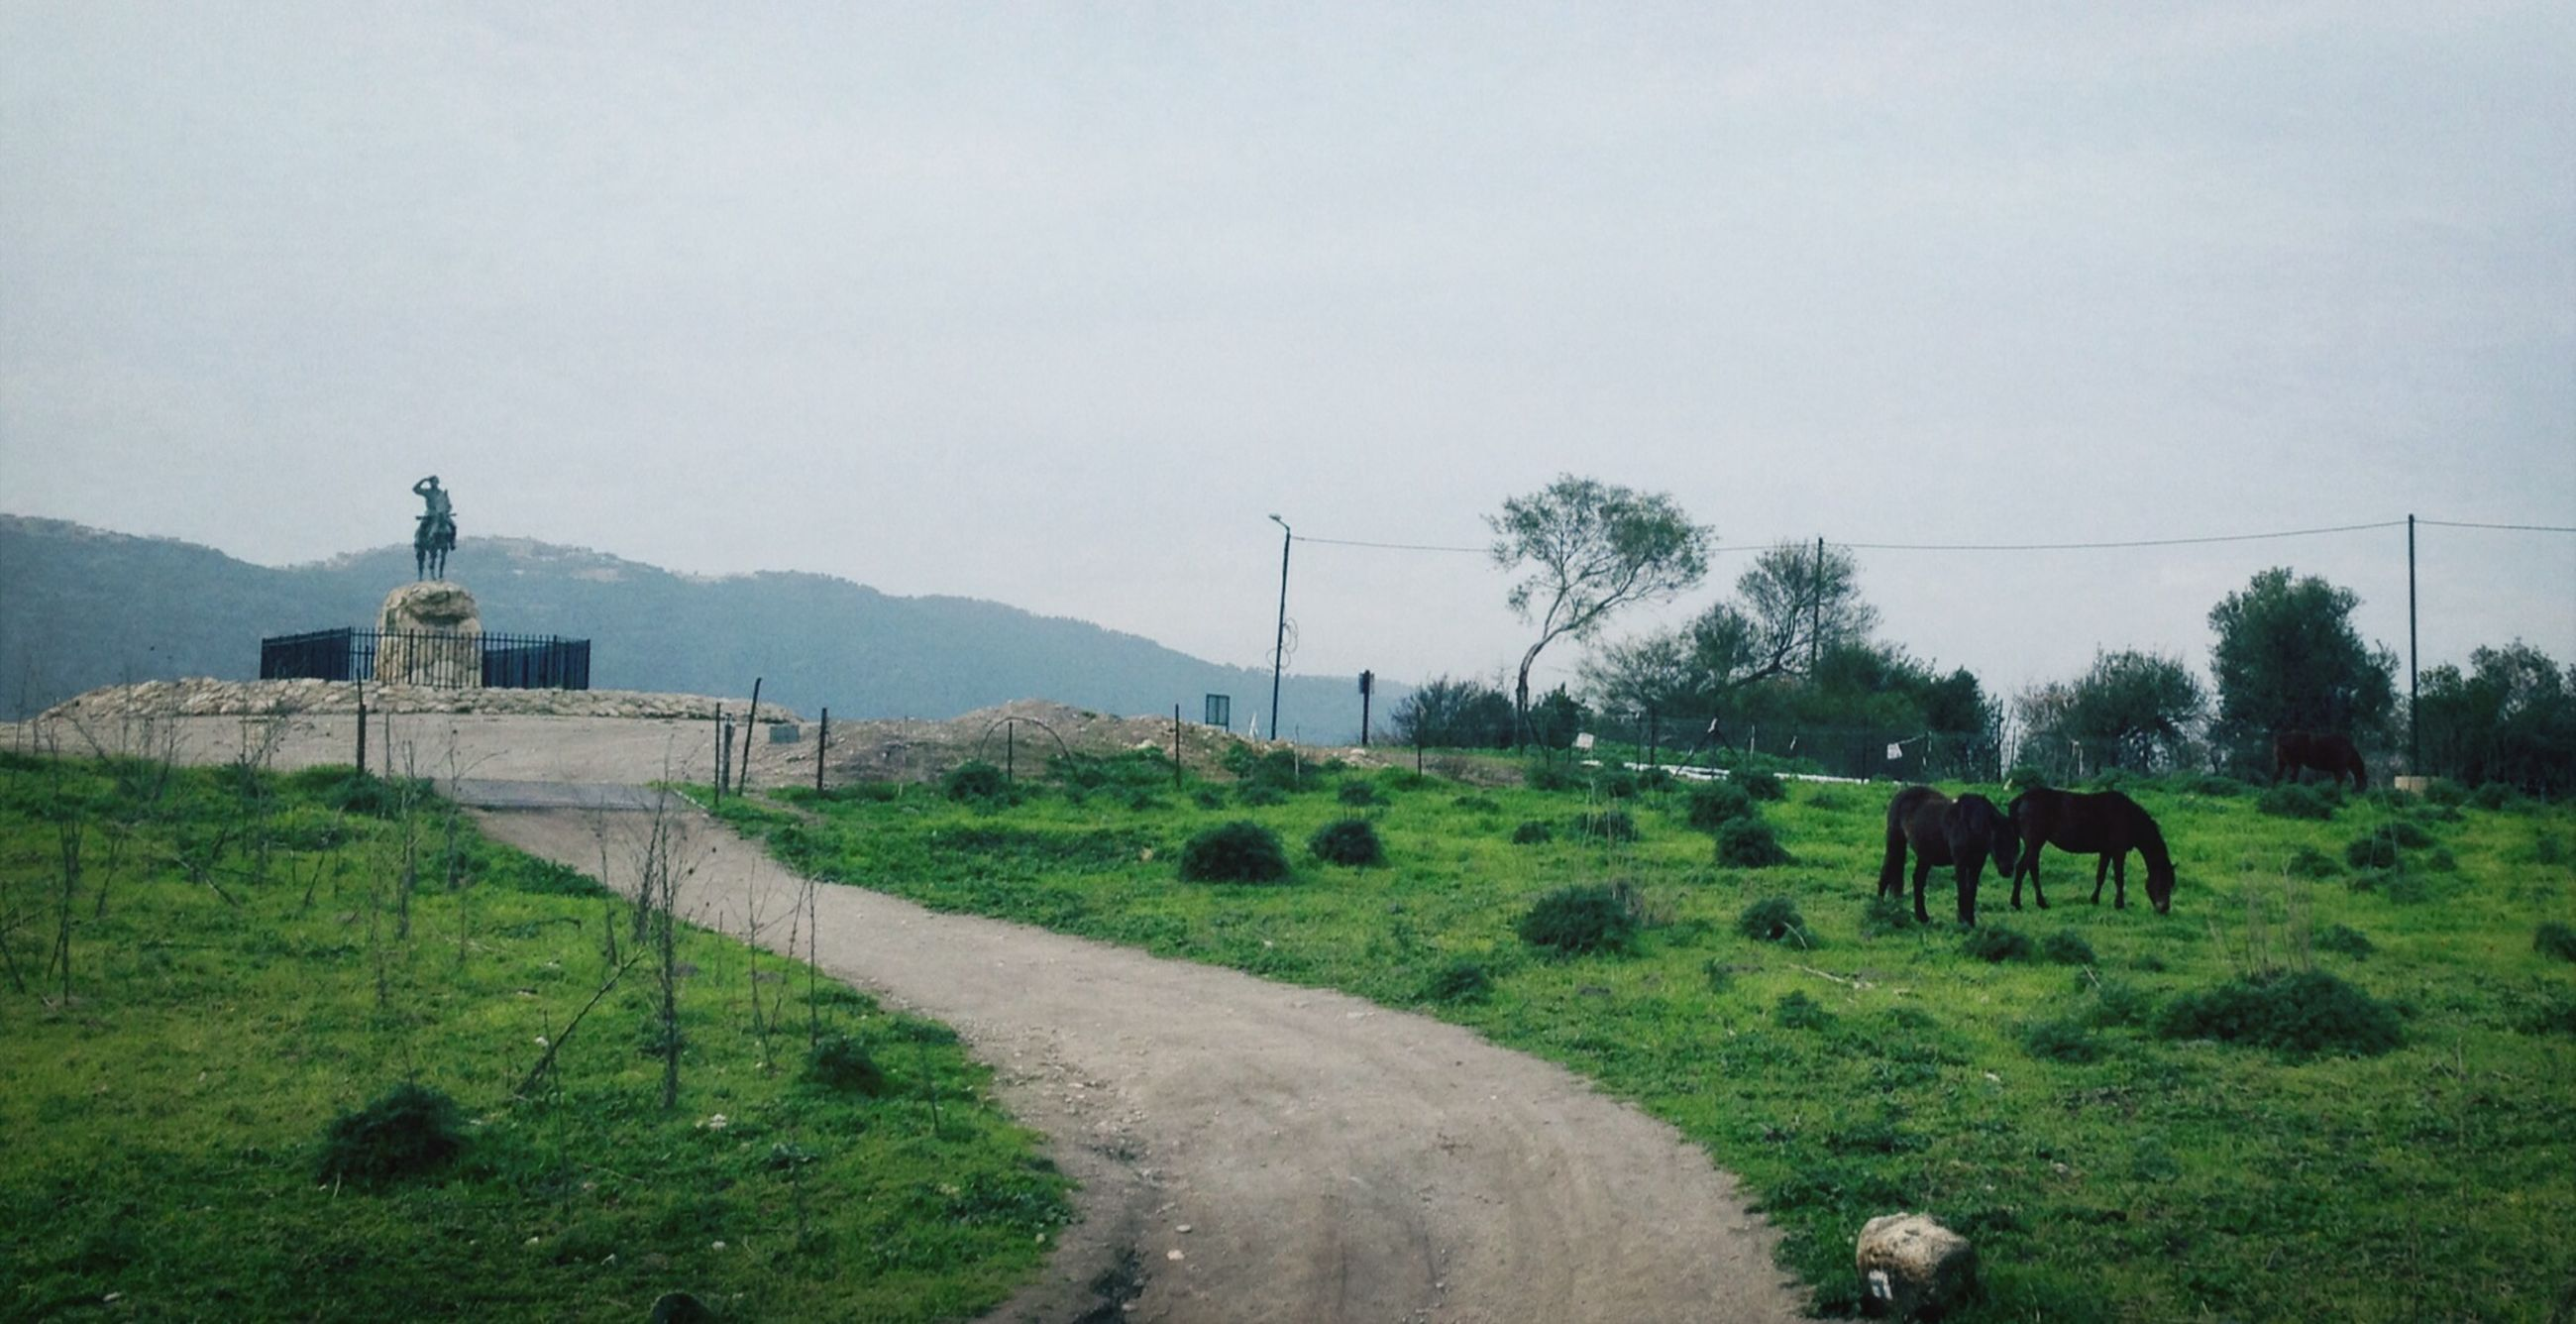 animal themes, domestic animals, mammal, grass, livestock, landscape, field, horse, sky, cow, tree, nature, road, grazing, mountain, built structure, tranquility, green color, country road, clear sky